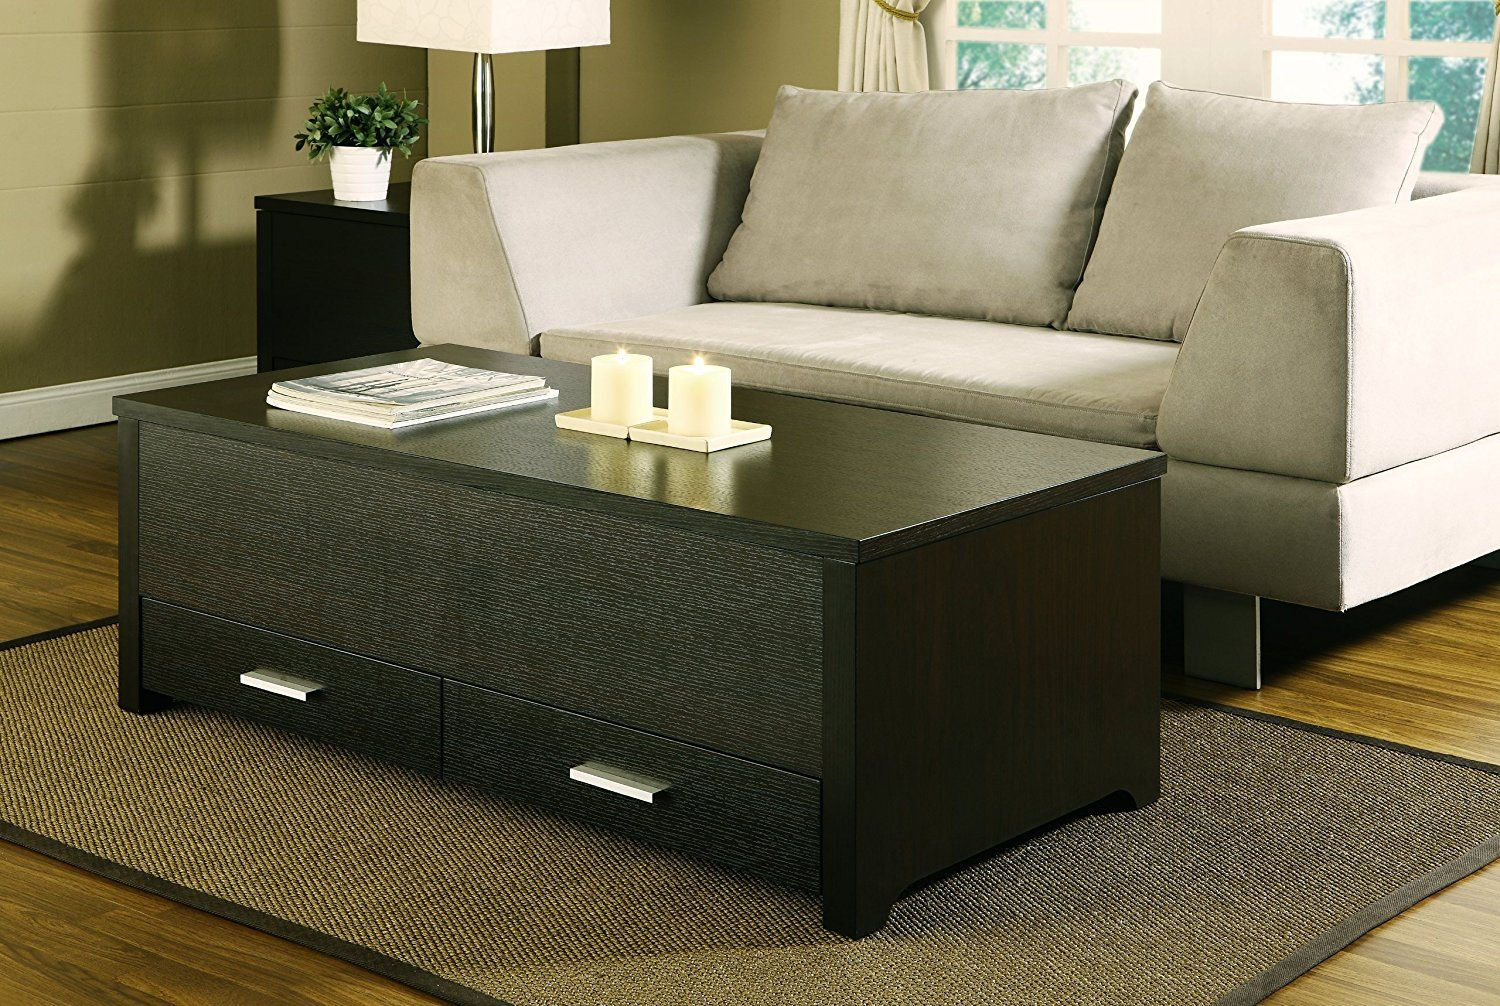 Furniture Of America Achley Trunk Style Coffee Table, Dark Espresso:  Amazon.ca: Home U0026 Kitchen